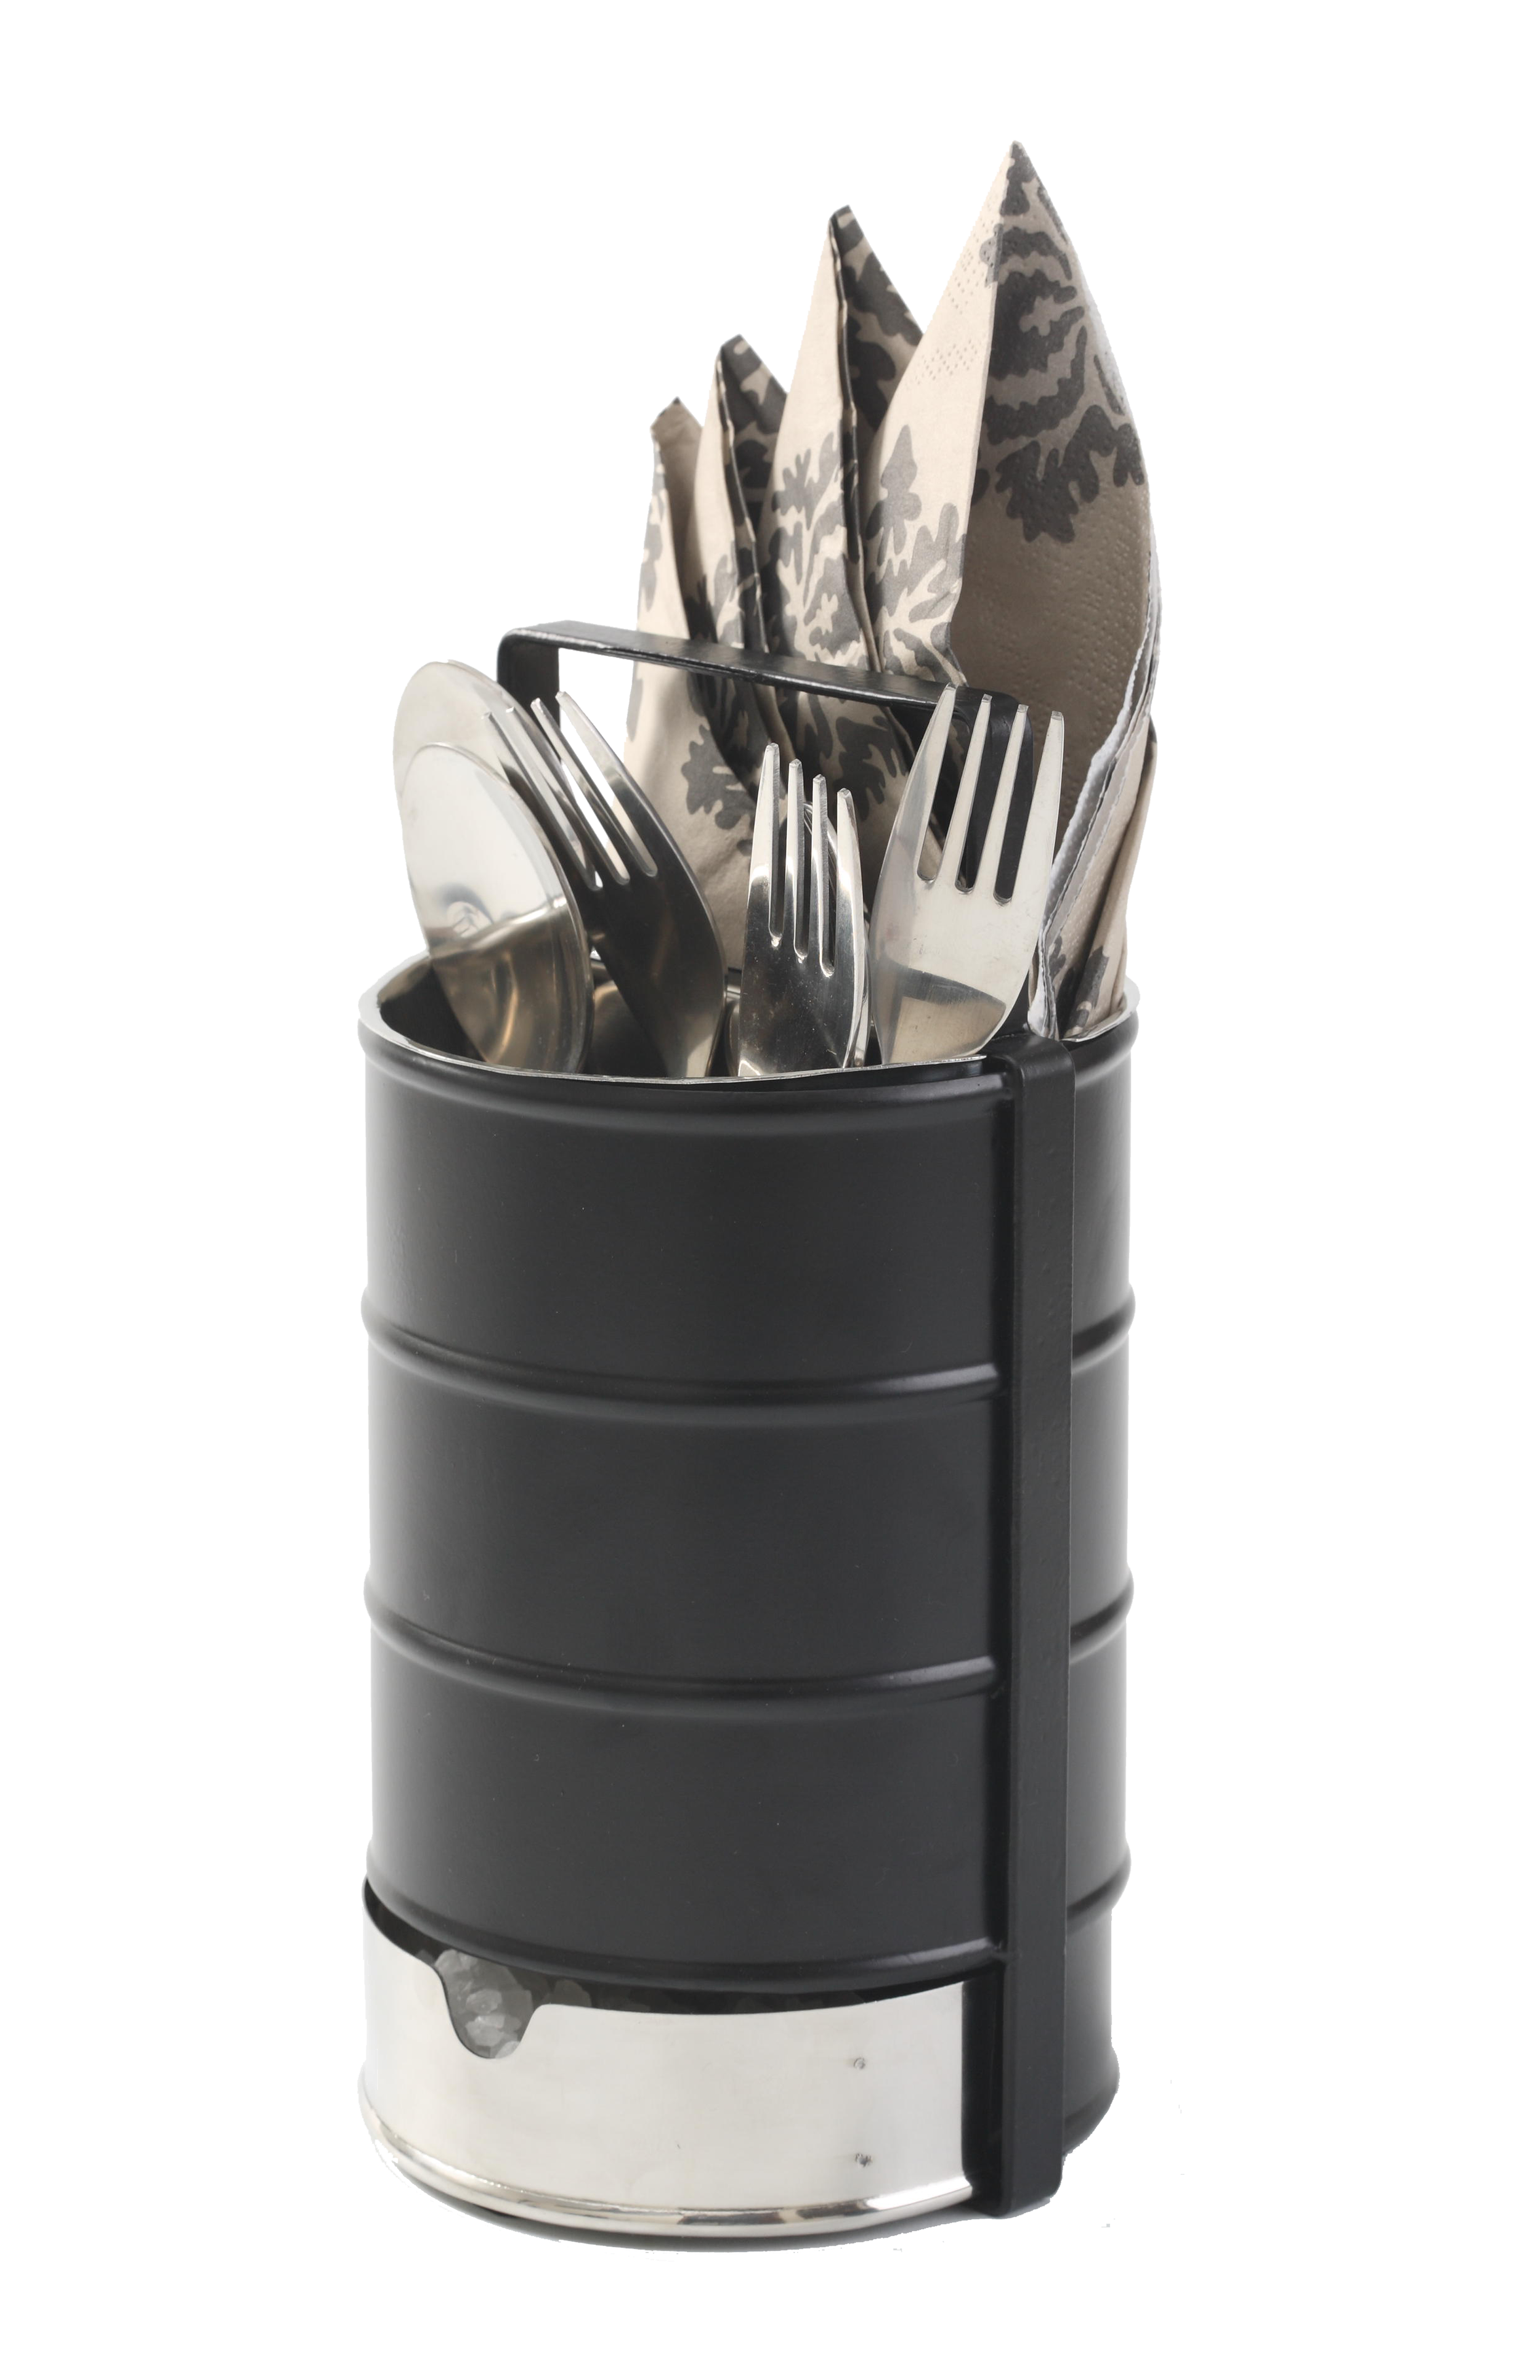 cutlery dabba keeps napkins and all cutlery including serving spoons handy for large family gatherings